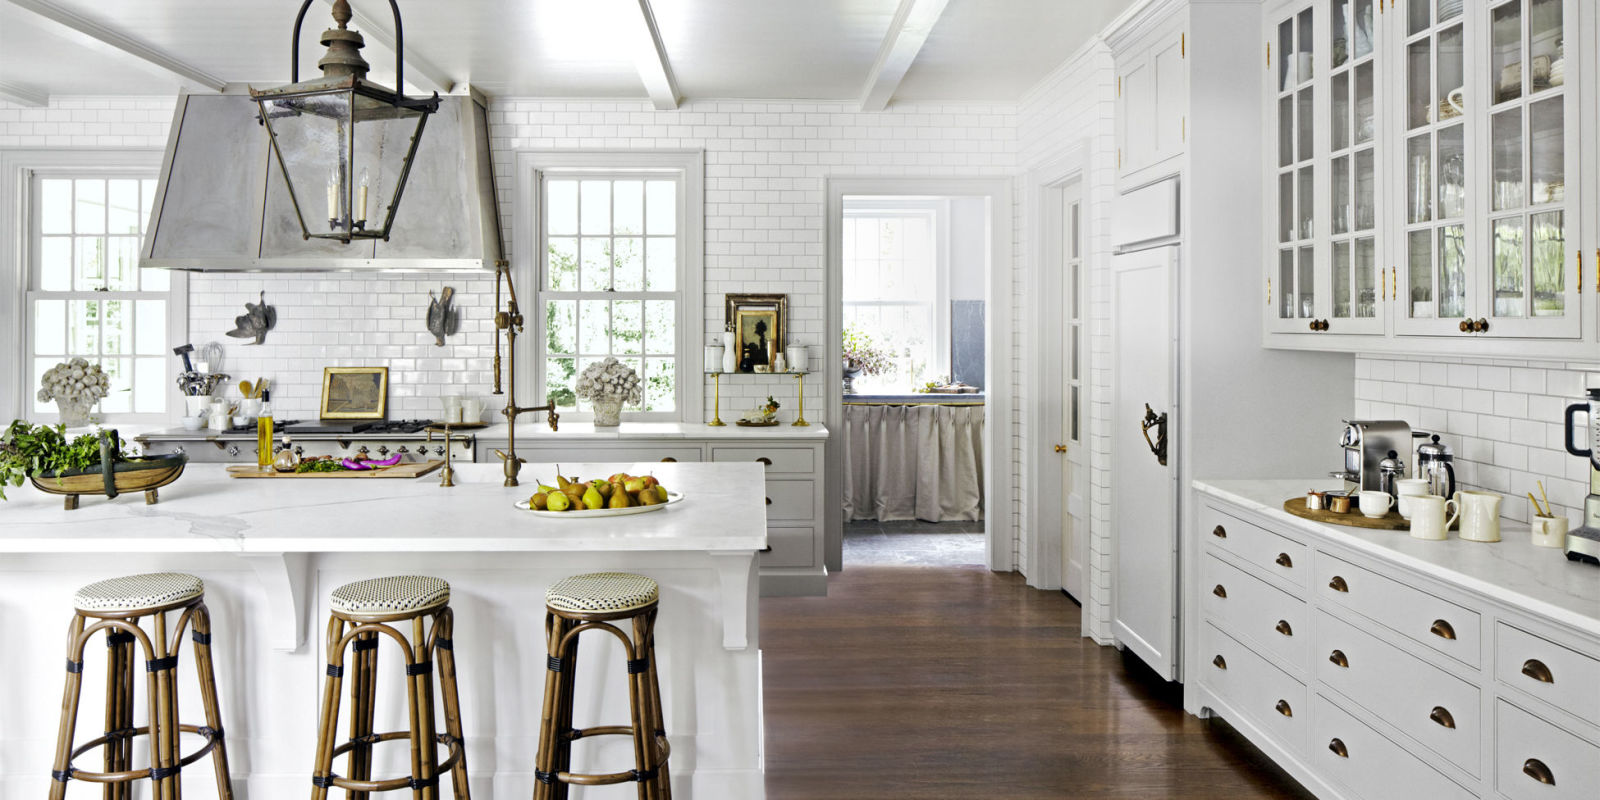 8 gorgeous kitchen trends that will be huge in 2018 Best white kitchen ideas